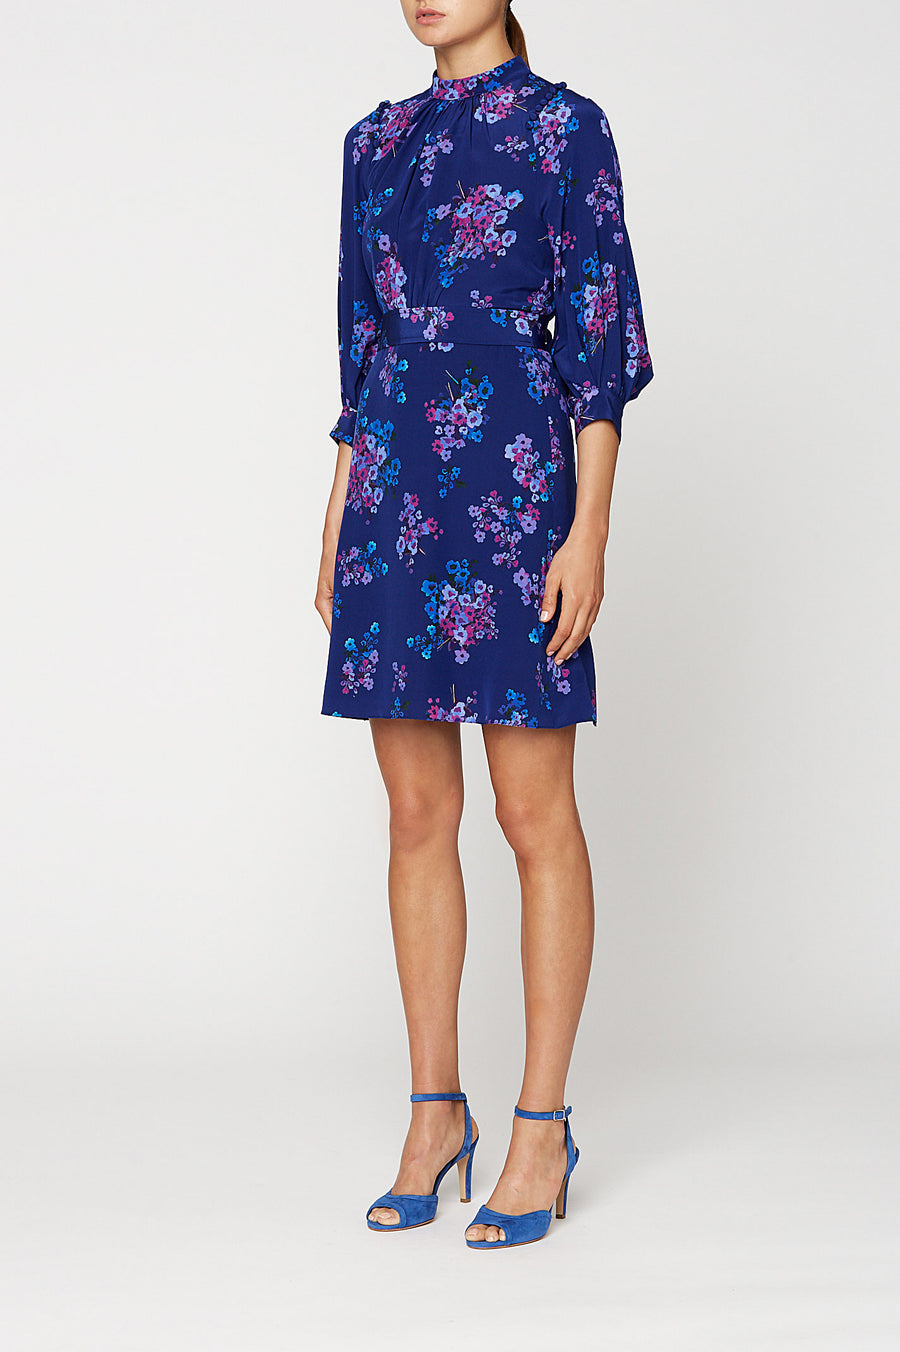 CDC PRINTED BUTTON SHLDR DRESS, BLUE color